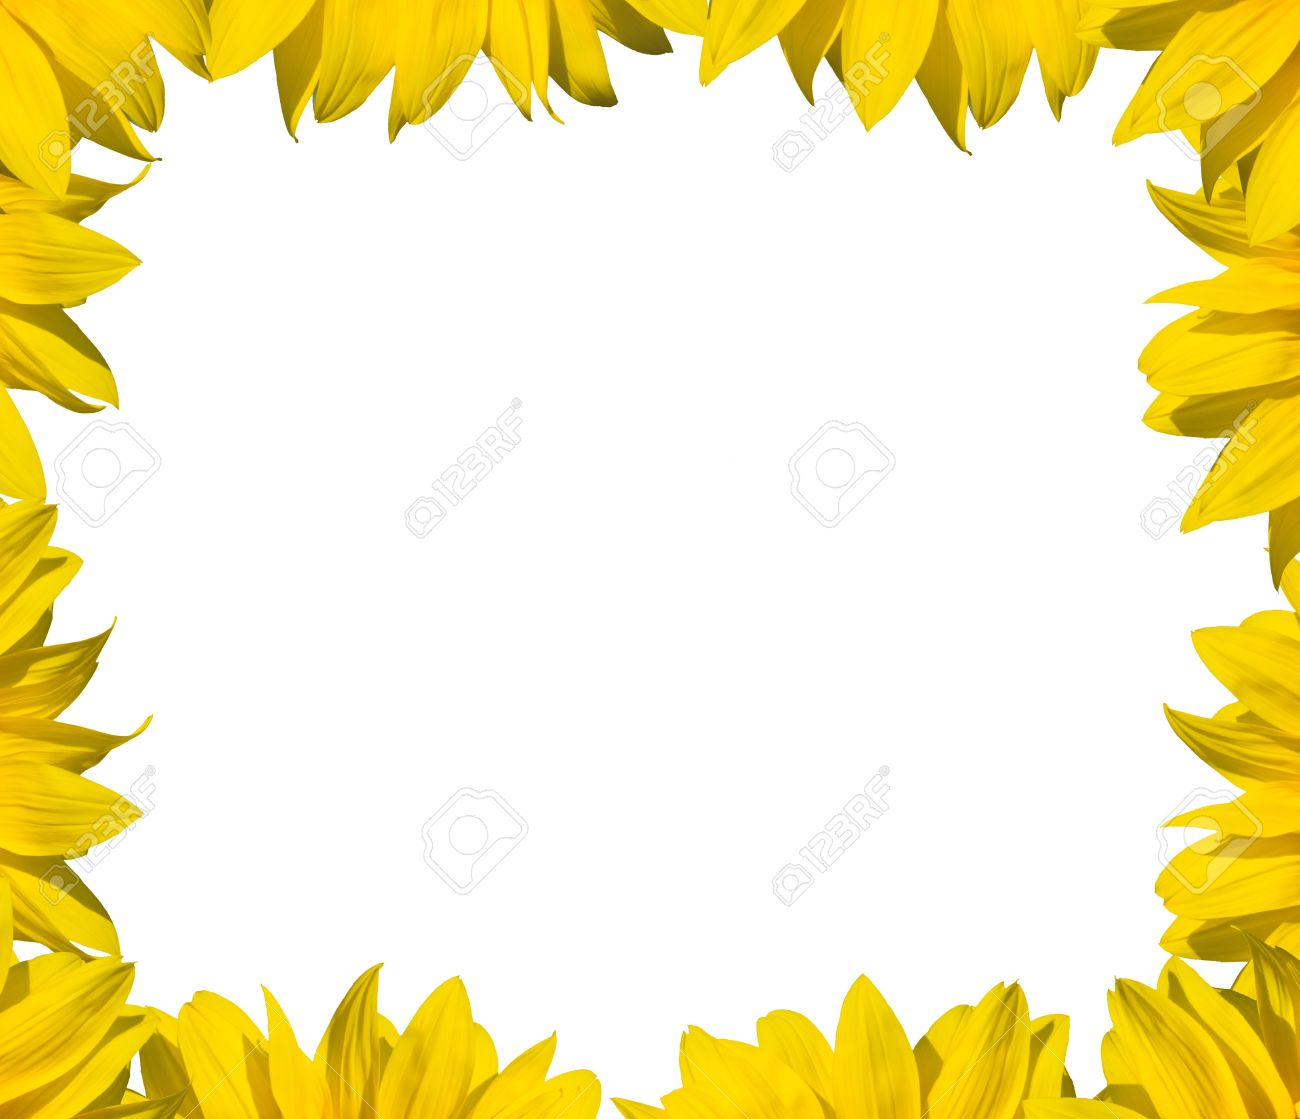 Sunflower Frame For Text Or Image Stock Photo, Picture And Royalty ...